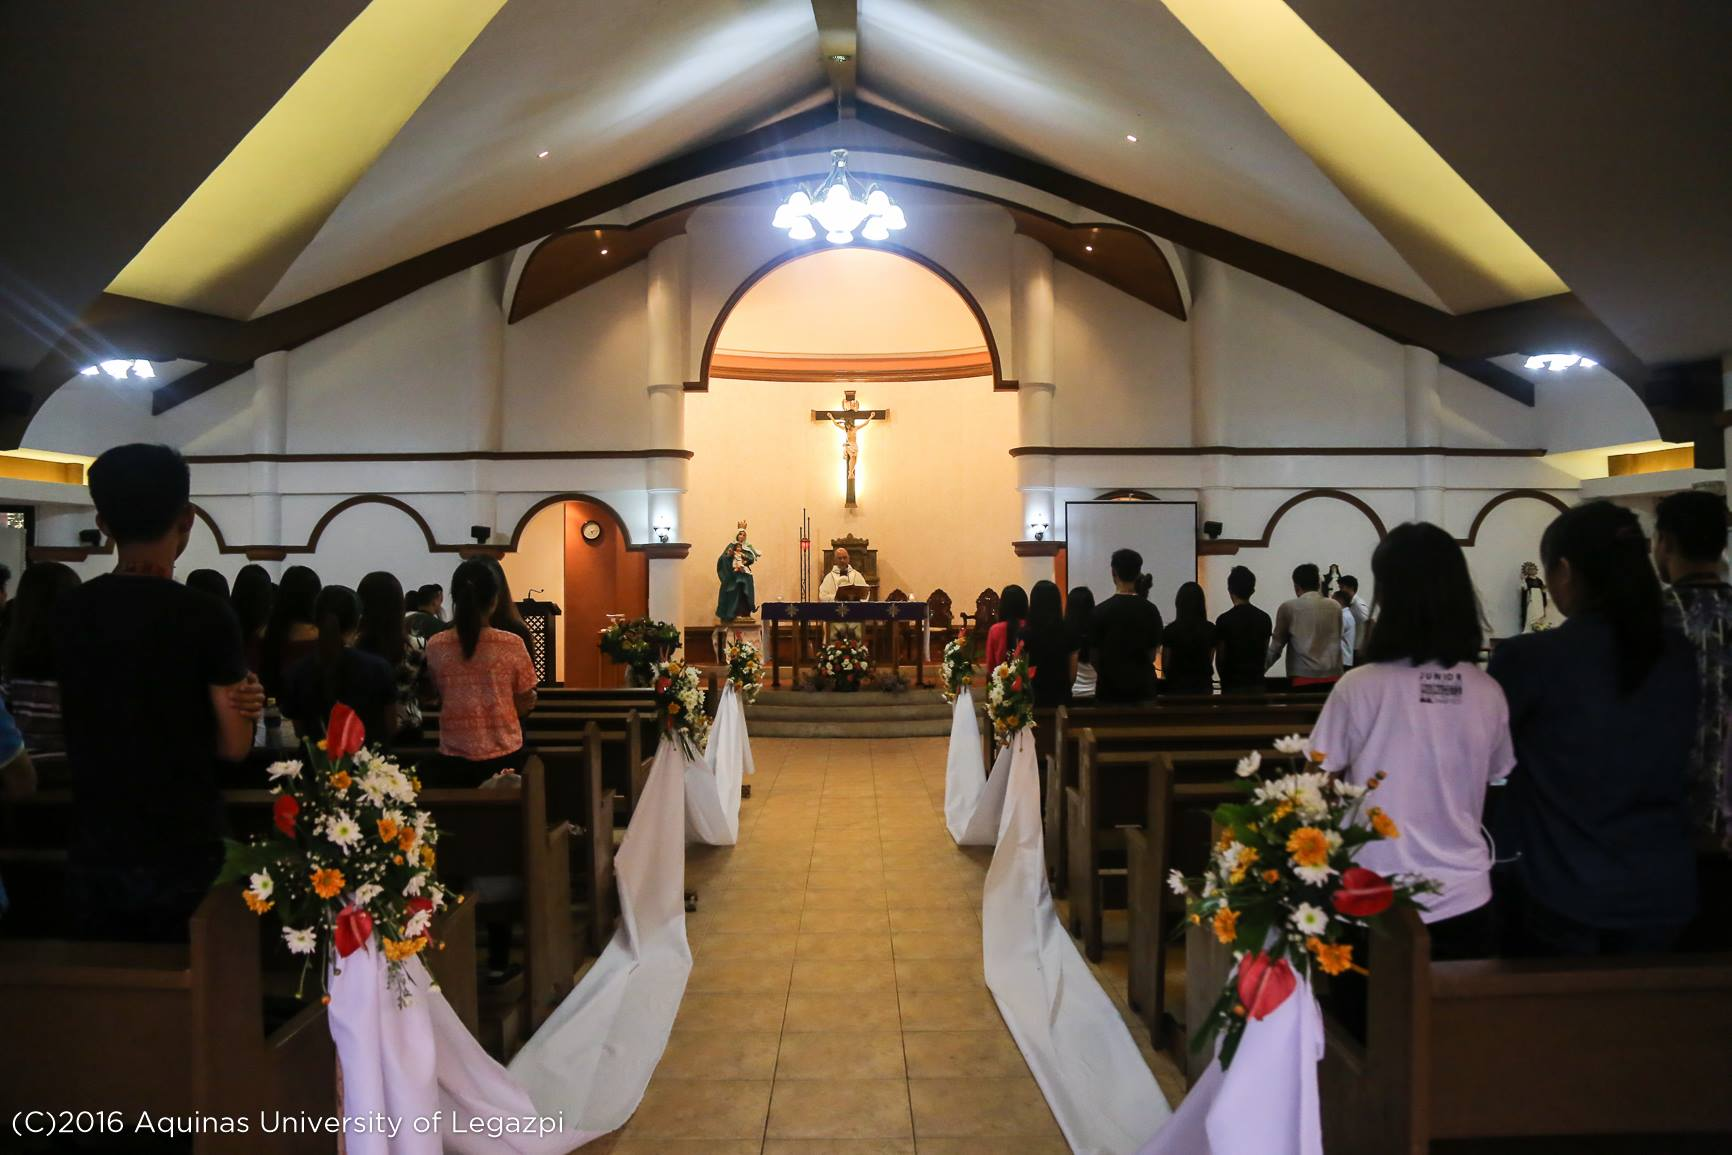 Anticipated Mass for the Feast of the Immaculate Conception